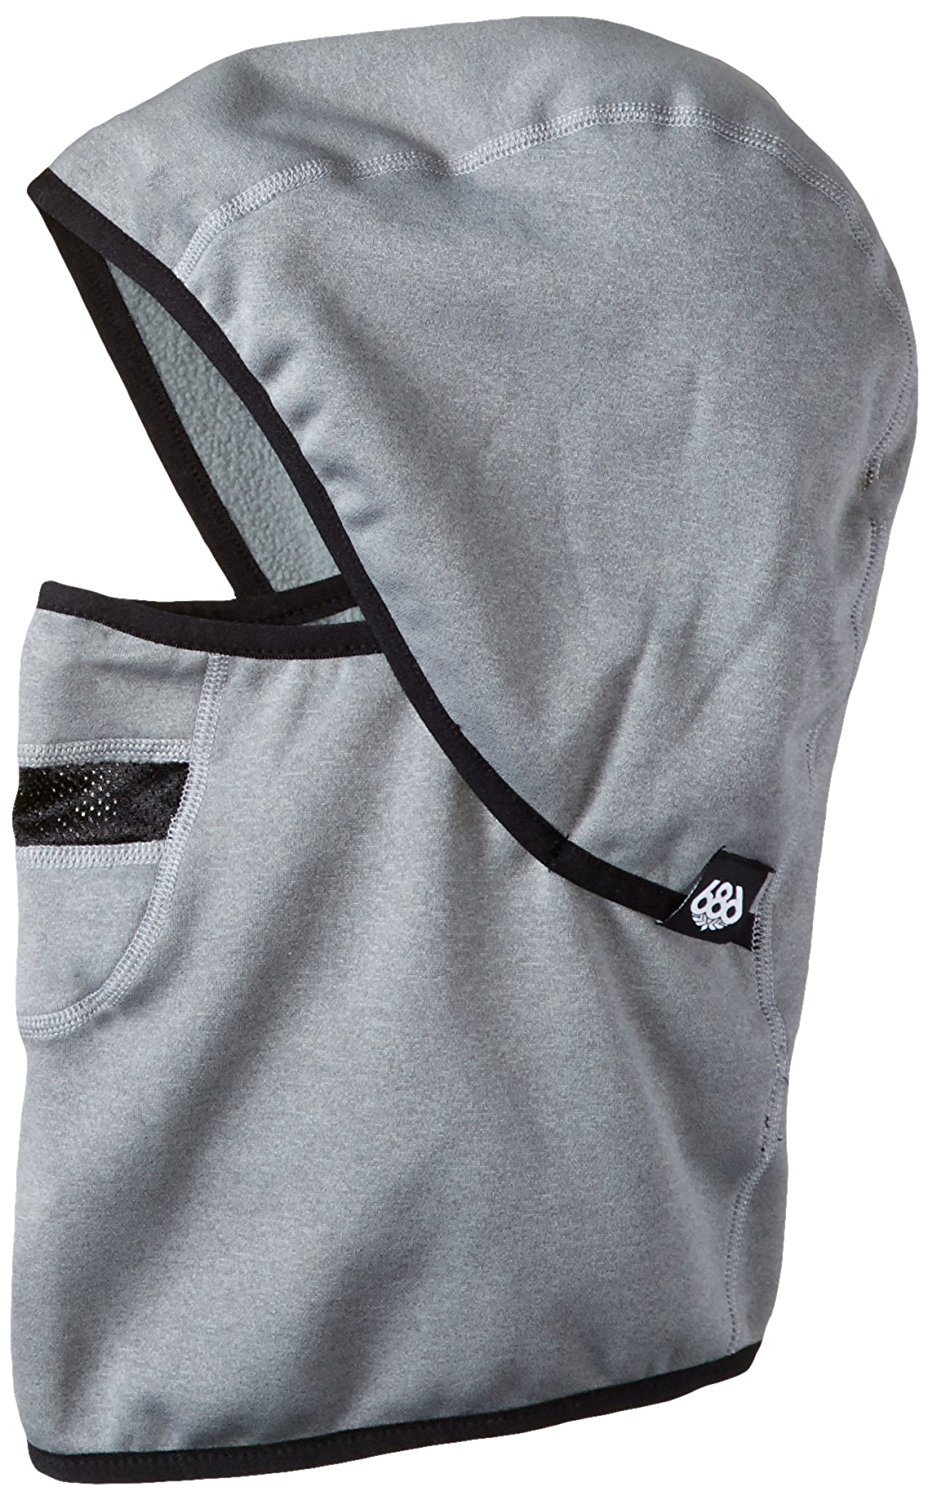 Product image of 686 Black OPS Balaclava - Grey - One Size